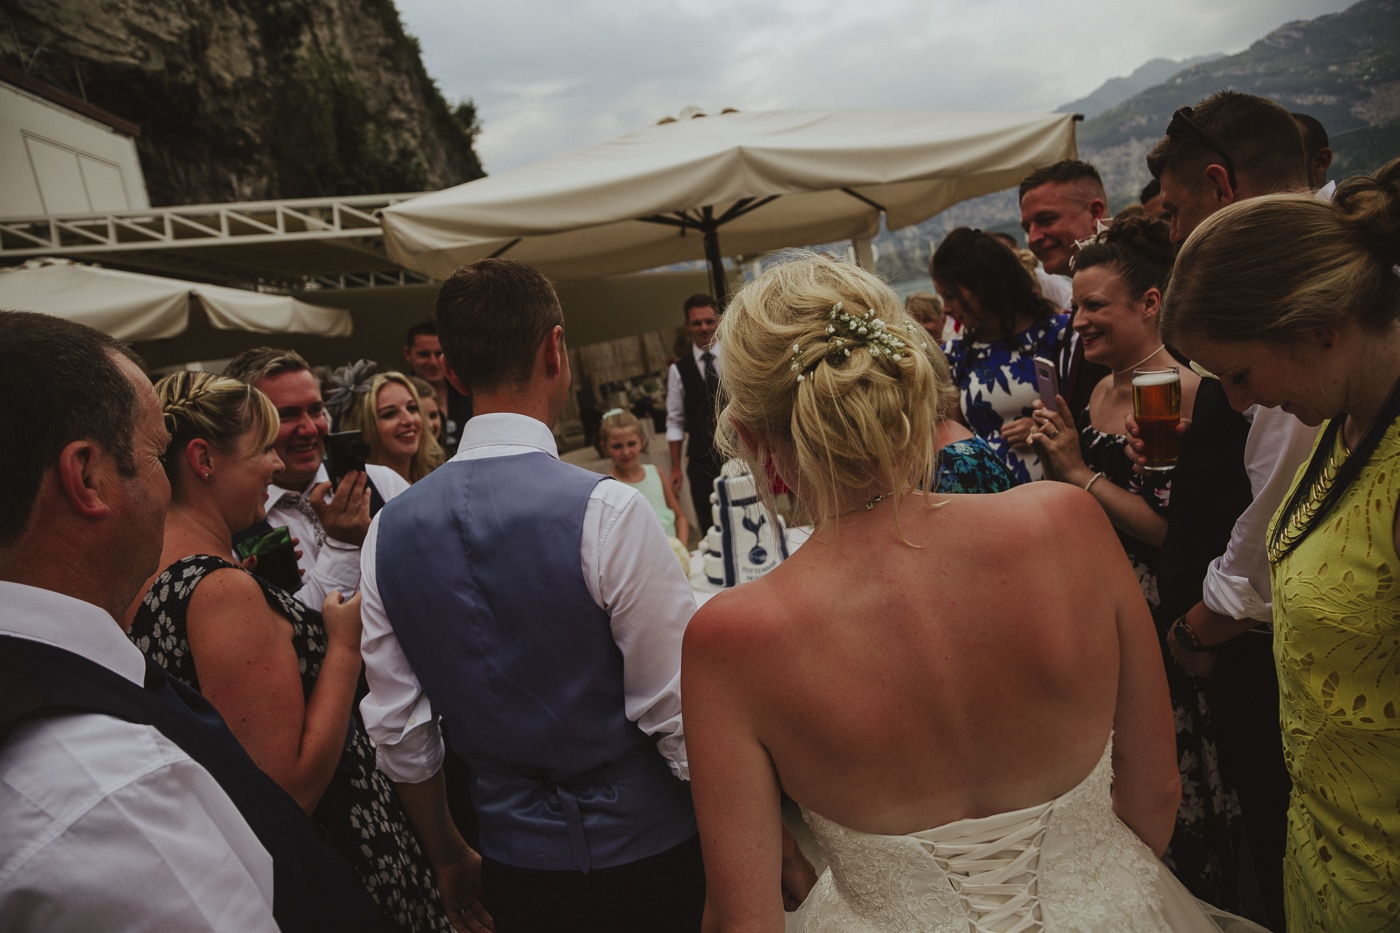 Bride with flowers in hair and corset back dress with groom in blue waistcoat walking away from the photographer to the umbrella and wedding cake surrounded by mountains by Joshua Wyborn